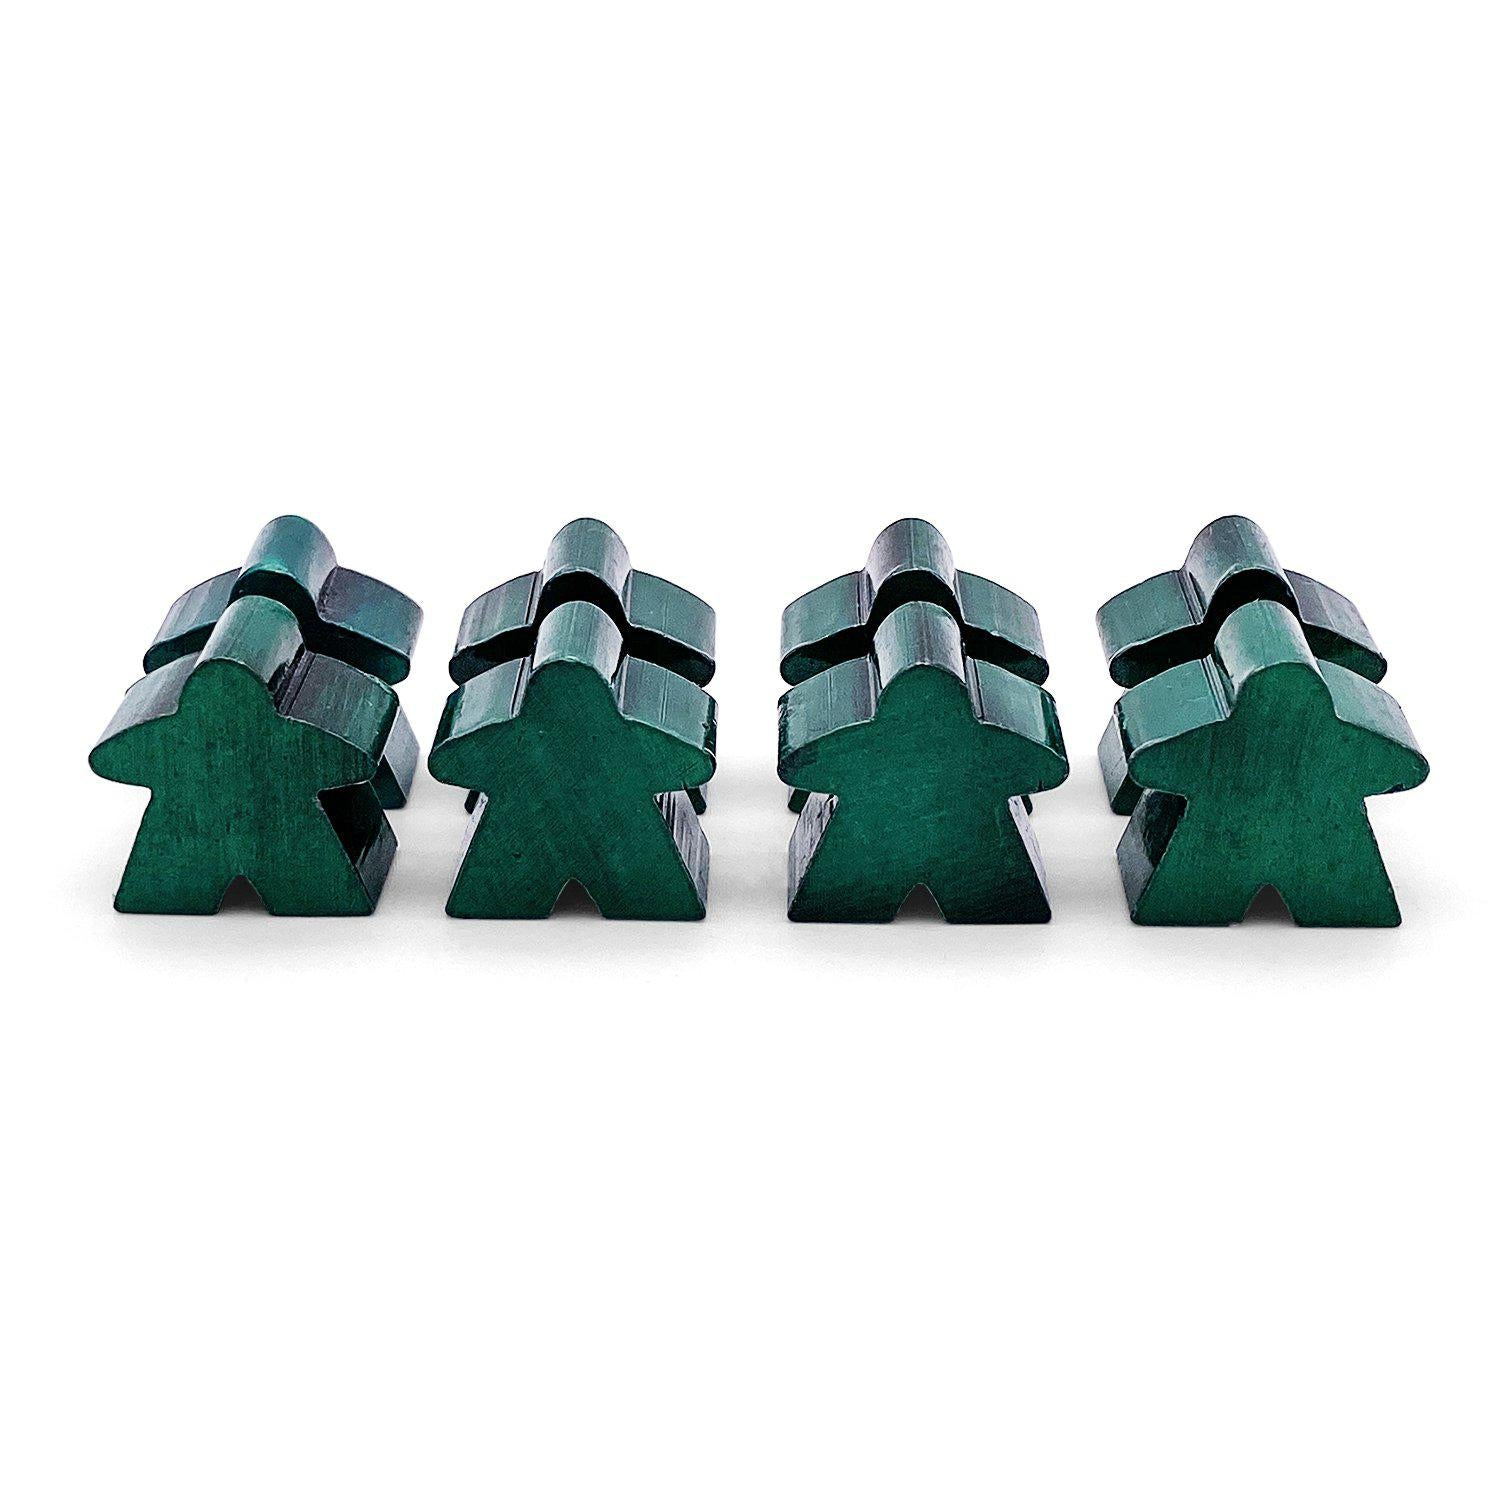 8 Pack of Green Metal Meeples by Norse Foundry